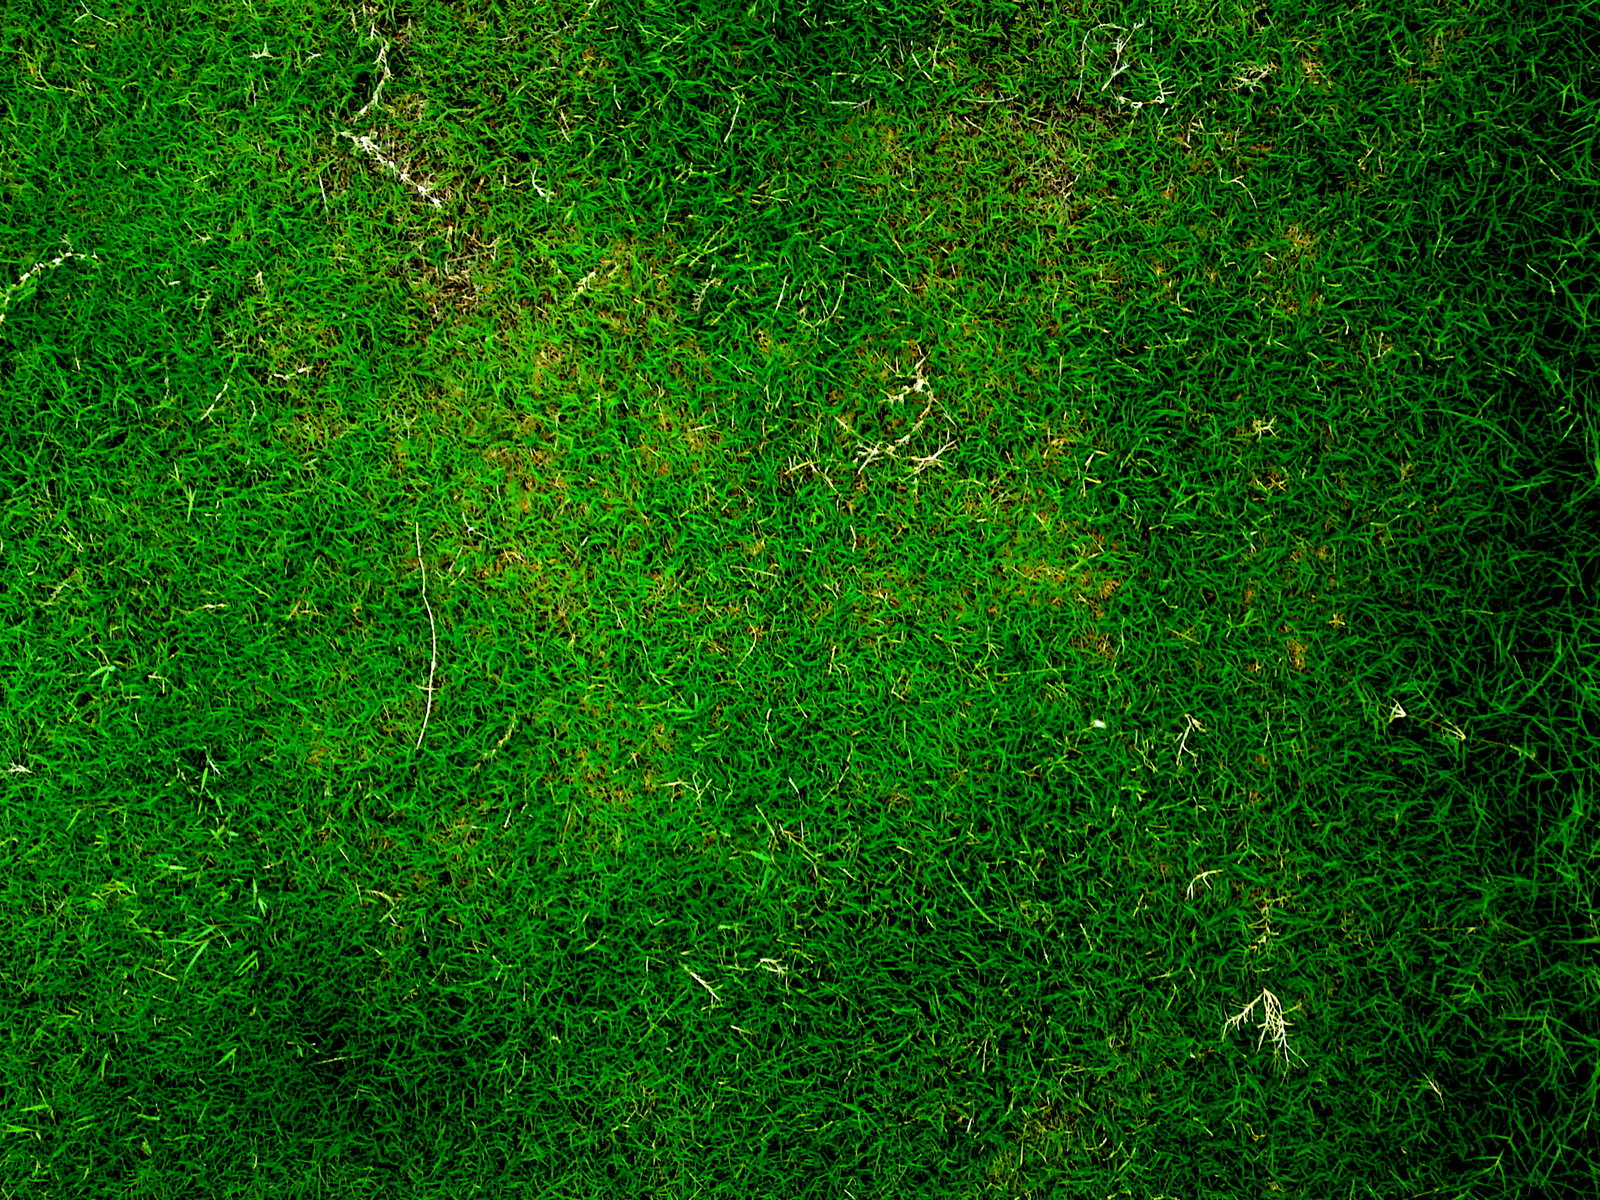 grass background texture - photo #14